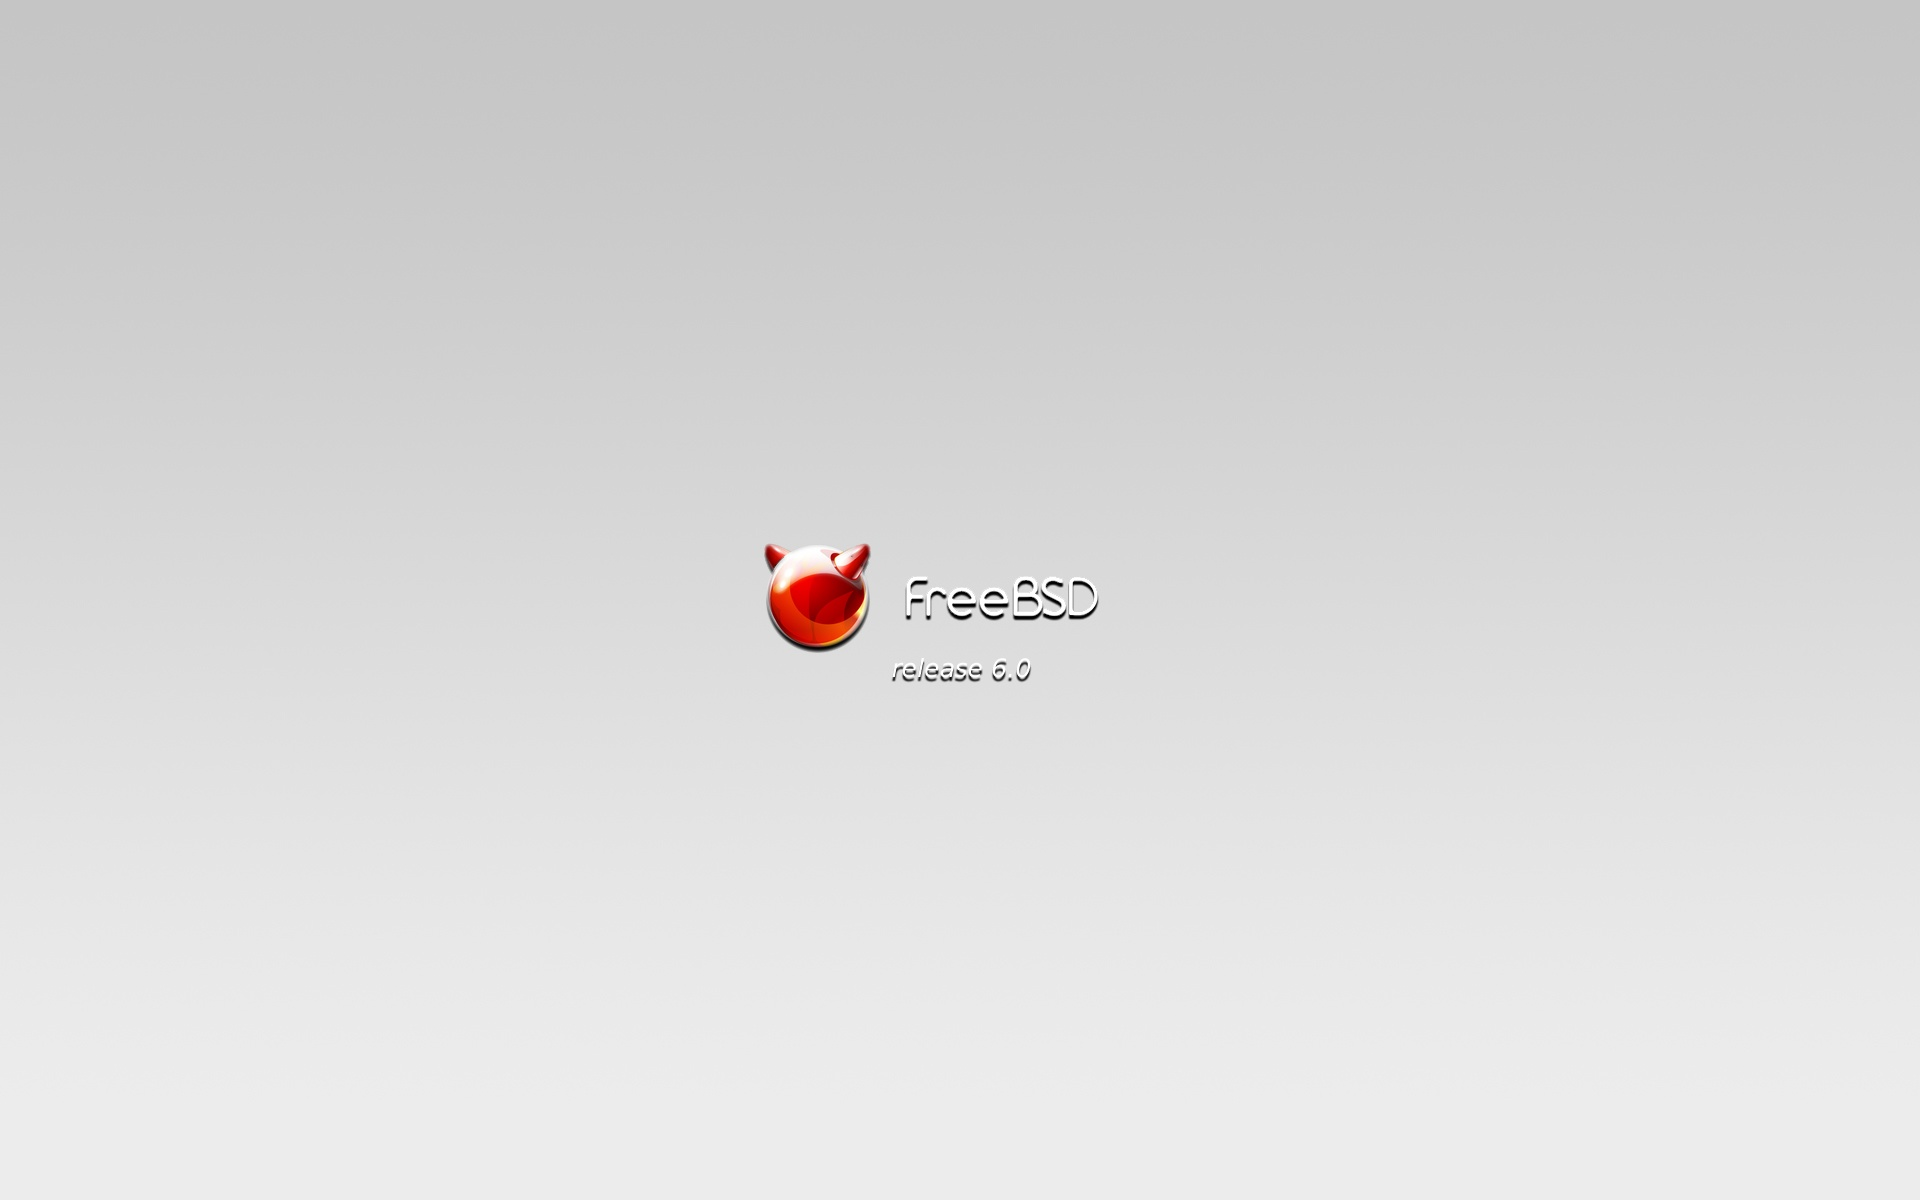 Wallpaper Hp Asus 3d Freebsd 6 Silver Wallpapers Freebsd 6 Silver Stock Photos